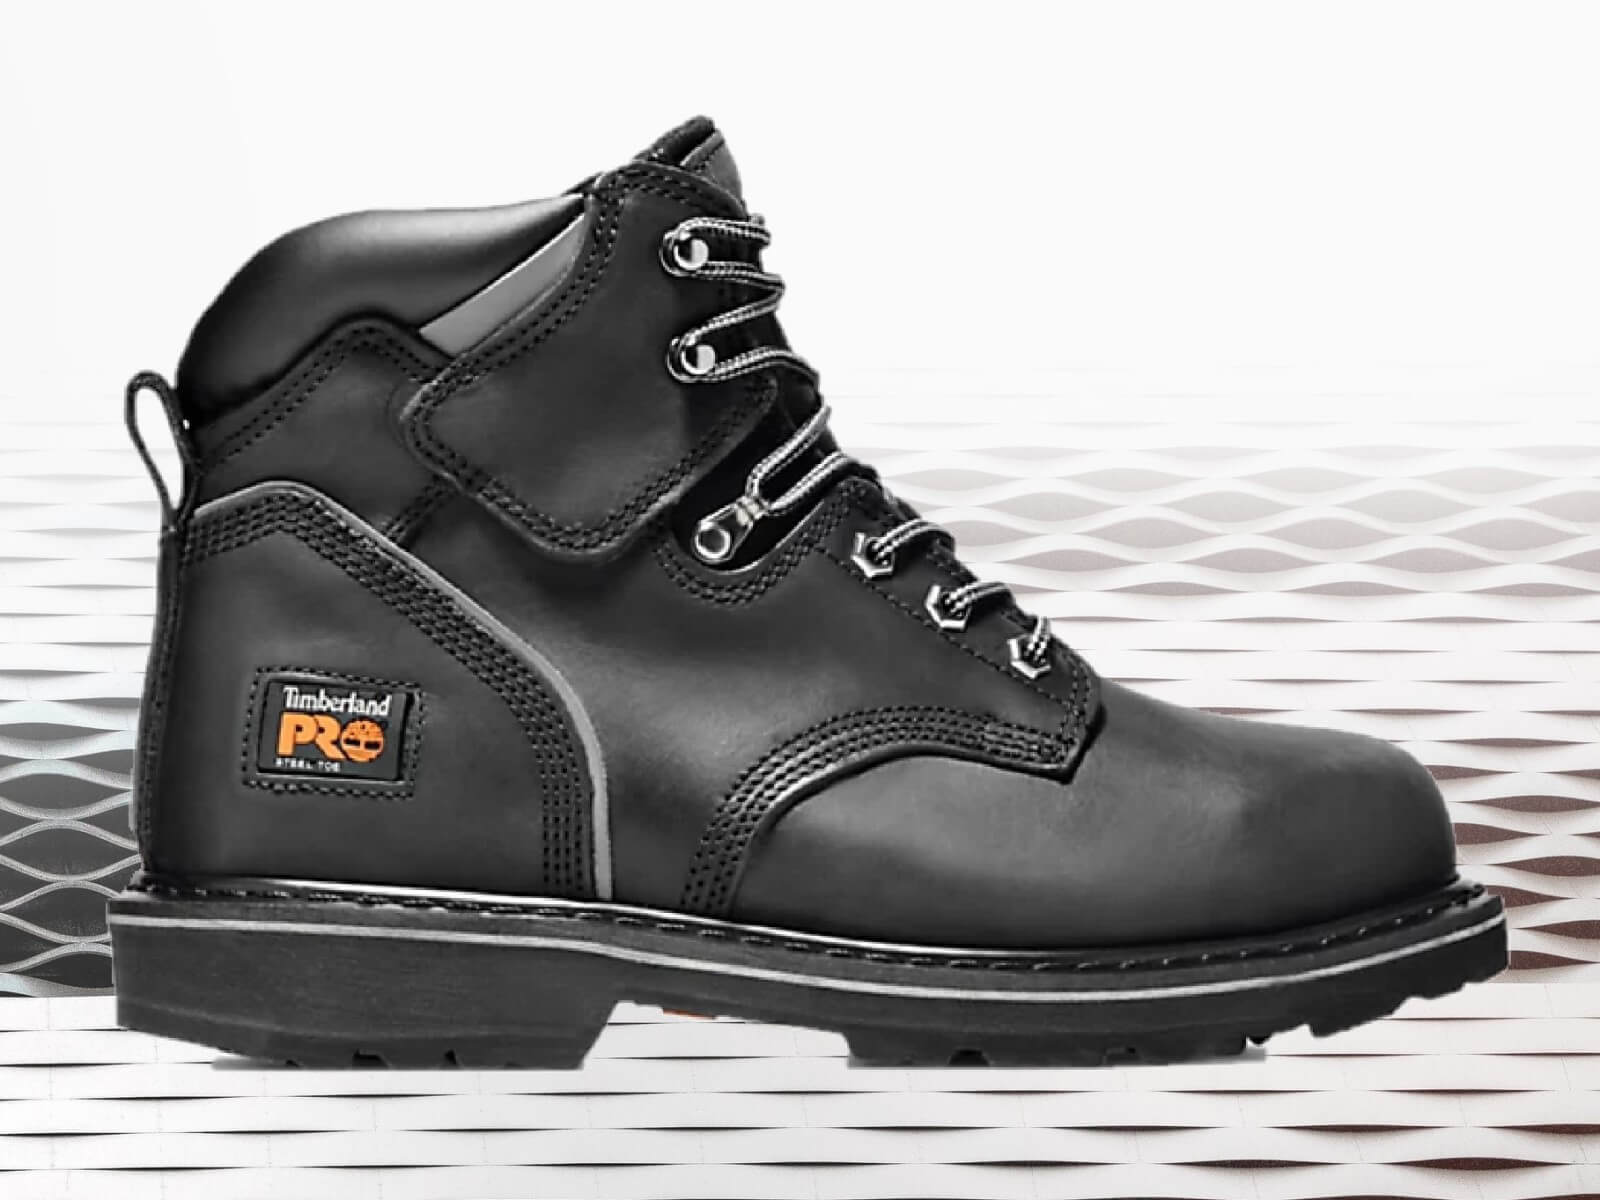 """Timberland pit boss 6"""" work boot for factory and warehouse workers"""